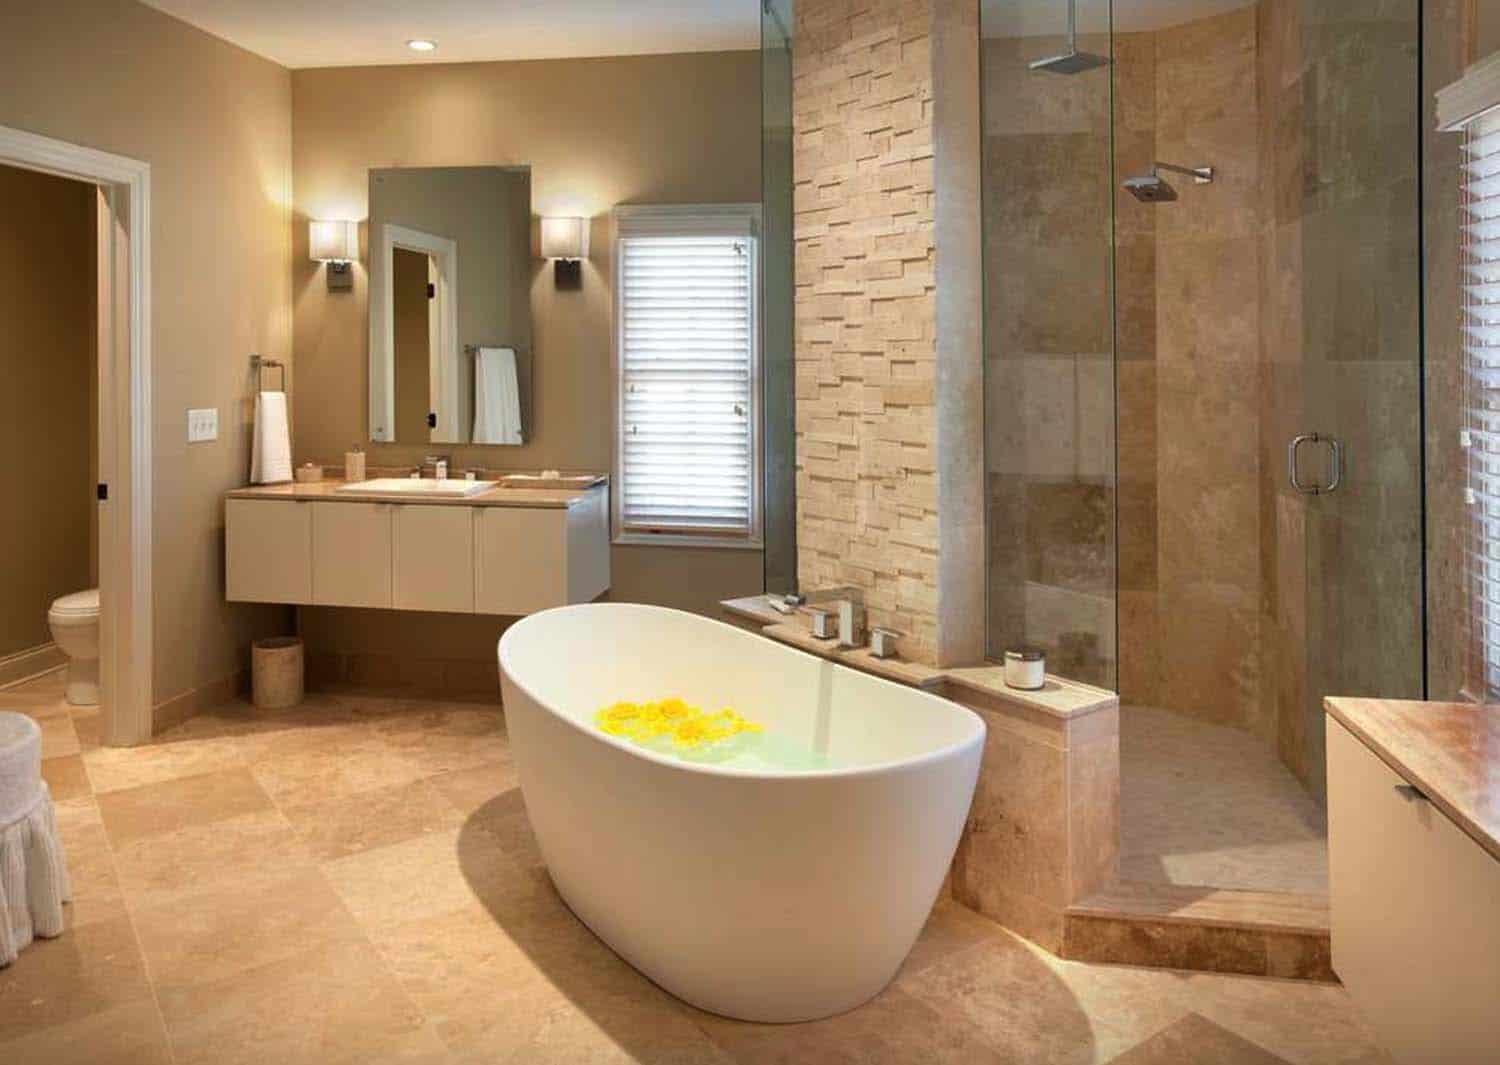 35 fabulous freestanding bathtub ideas for a luxurious soak for Salle de bain 8 m2